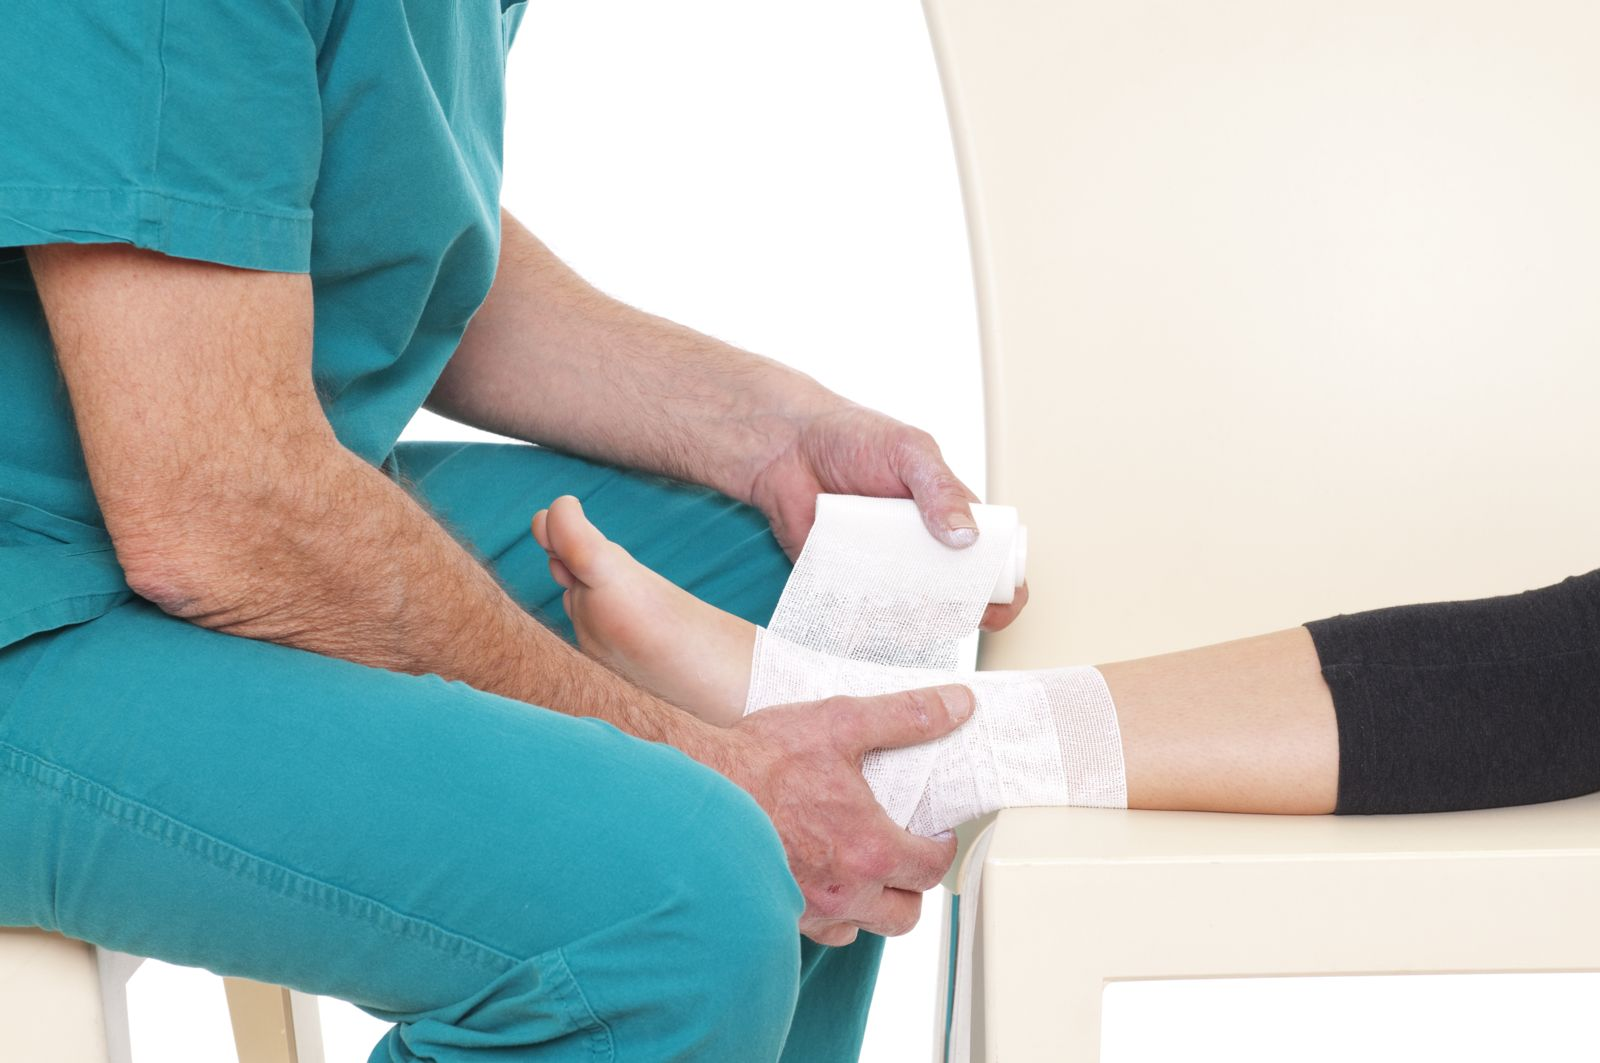 Doctor wrapping a sprained ankle